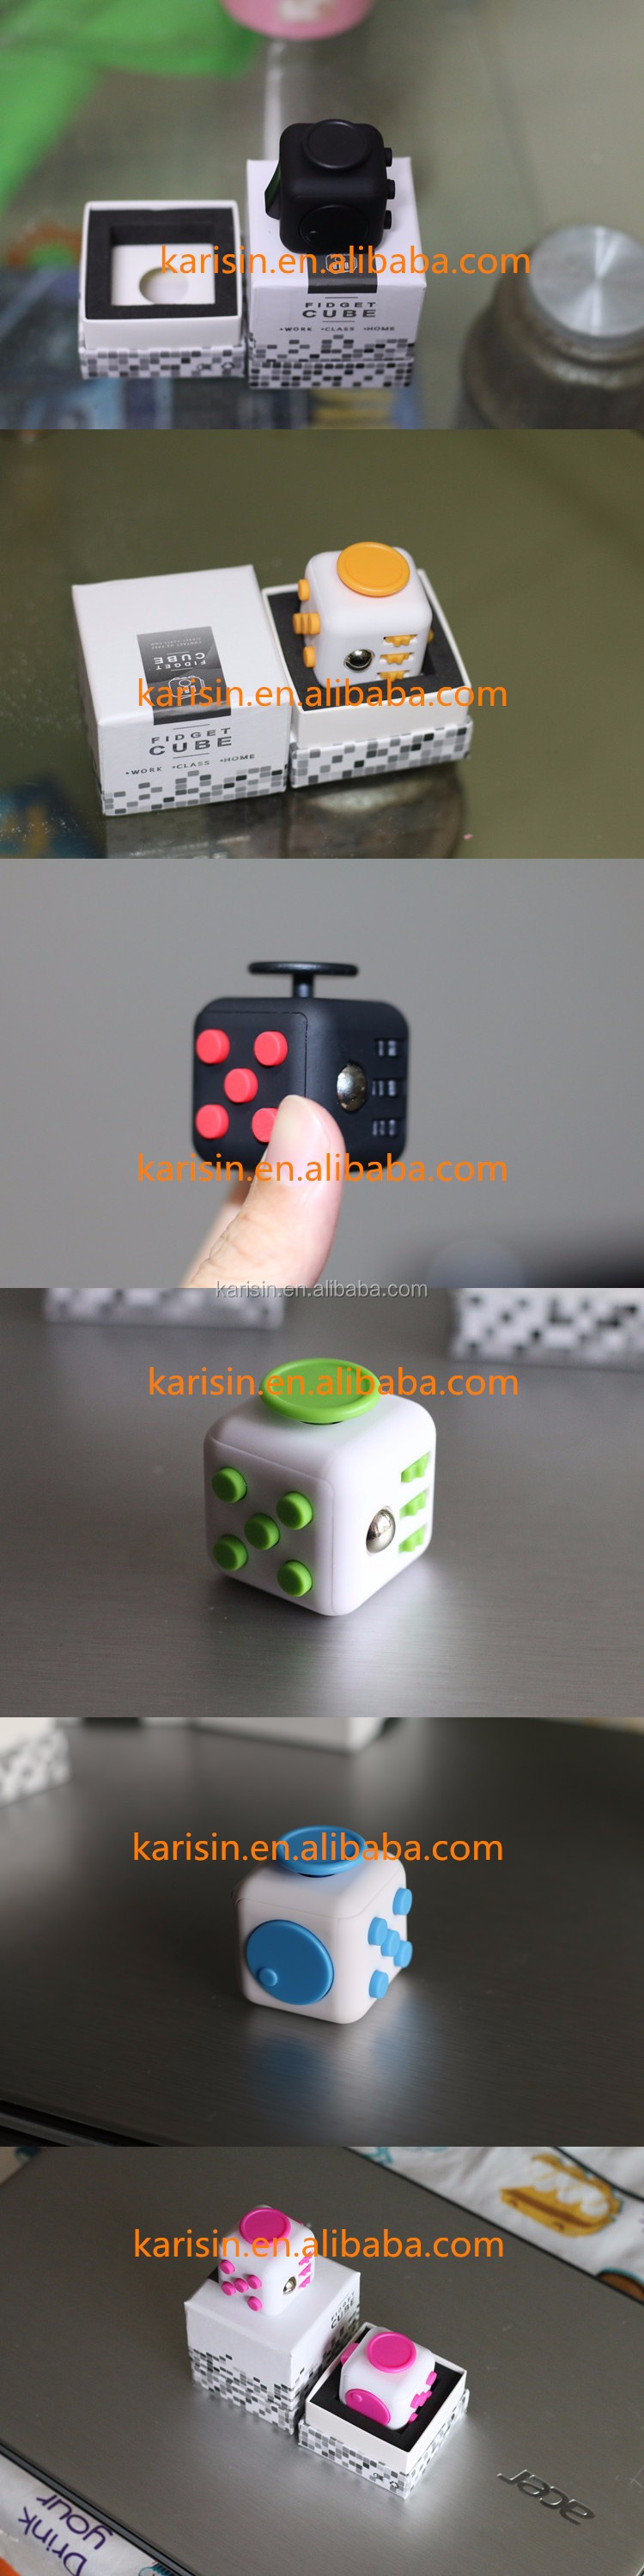 Customized Logo camo fidget cube relieves stress cub for Kids & Adults